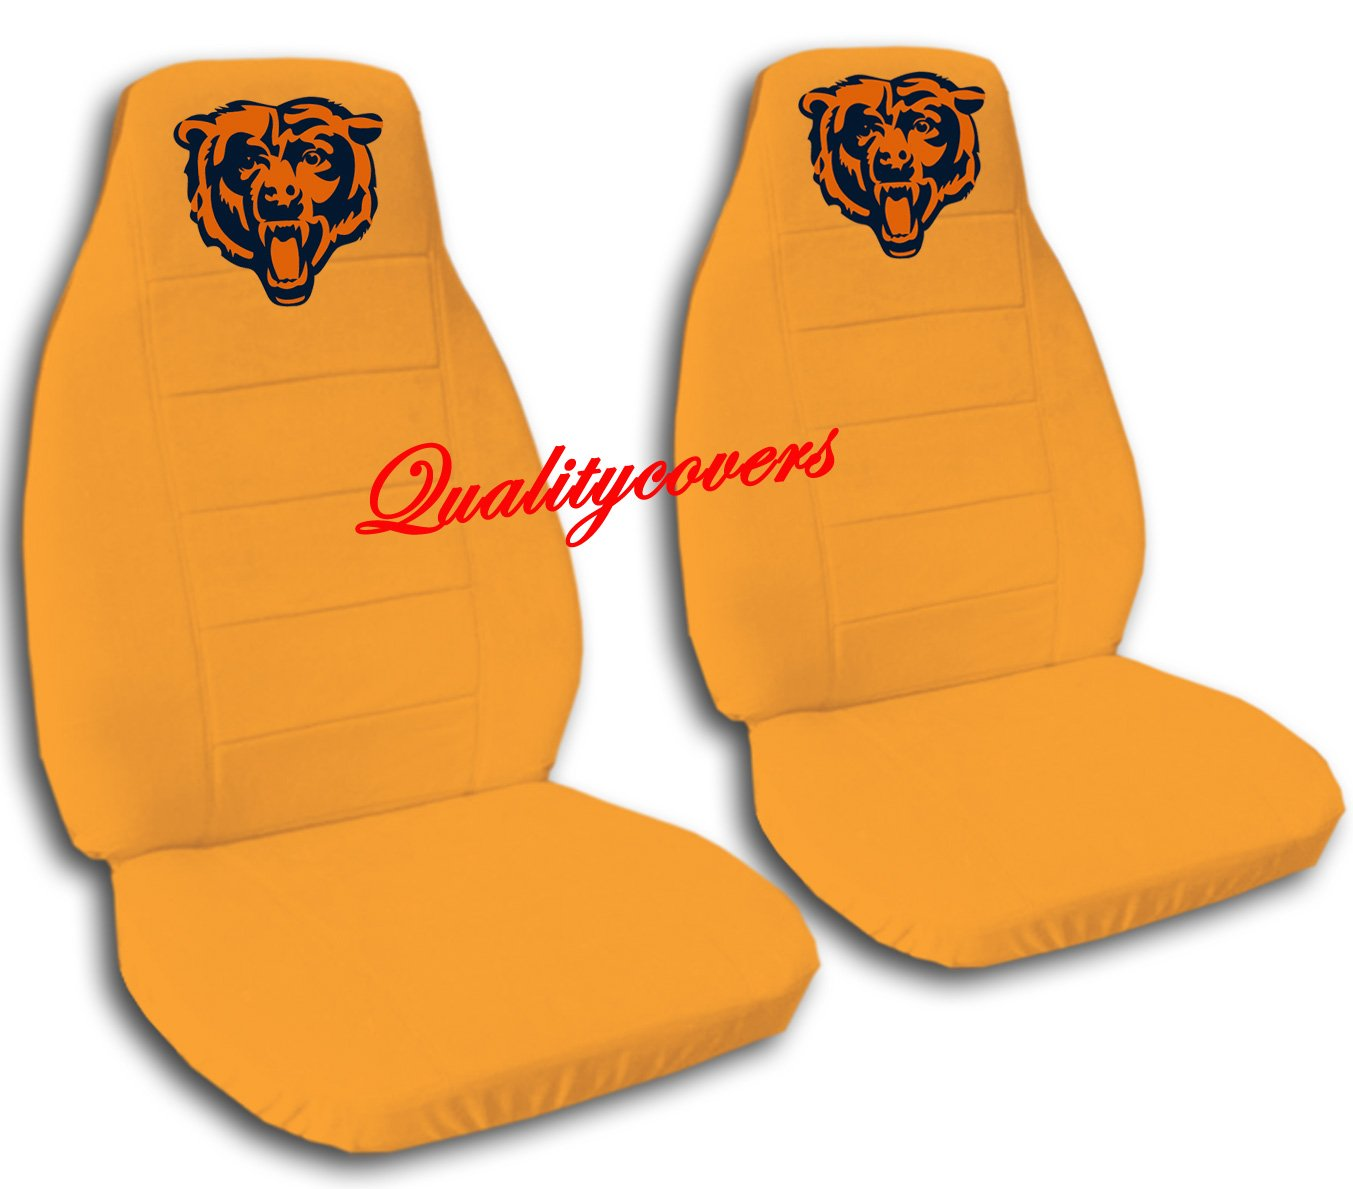 2 Orange Chicago seat covers for a 2007 to 2012 Ford Fusion. Side airbag friendly.